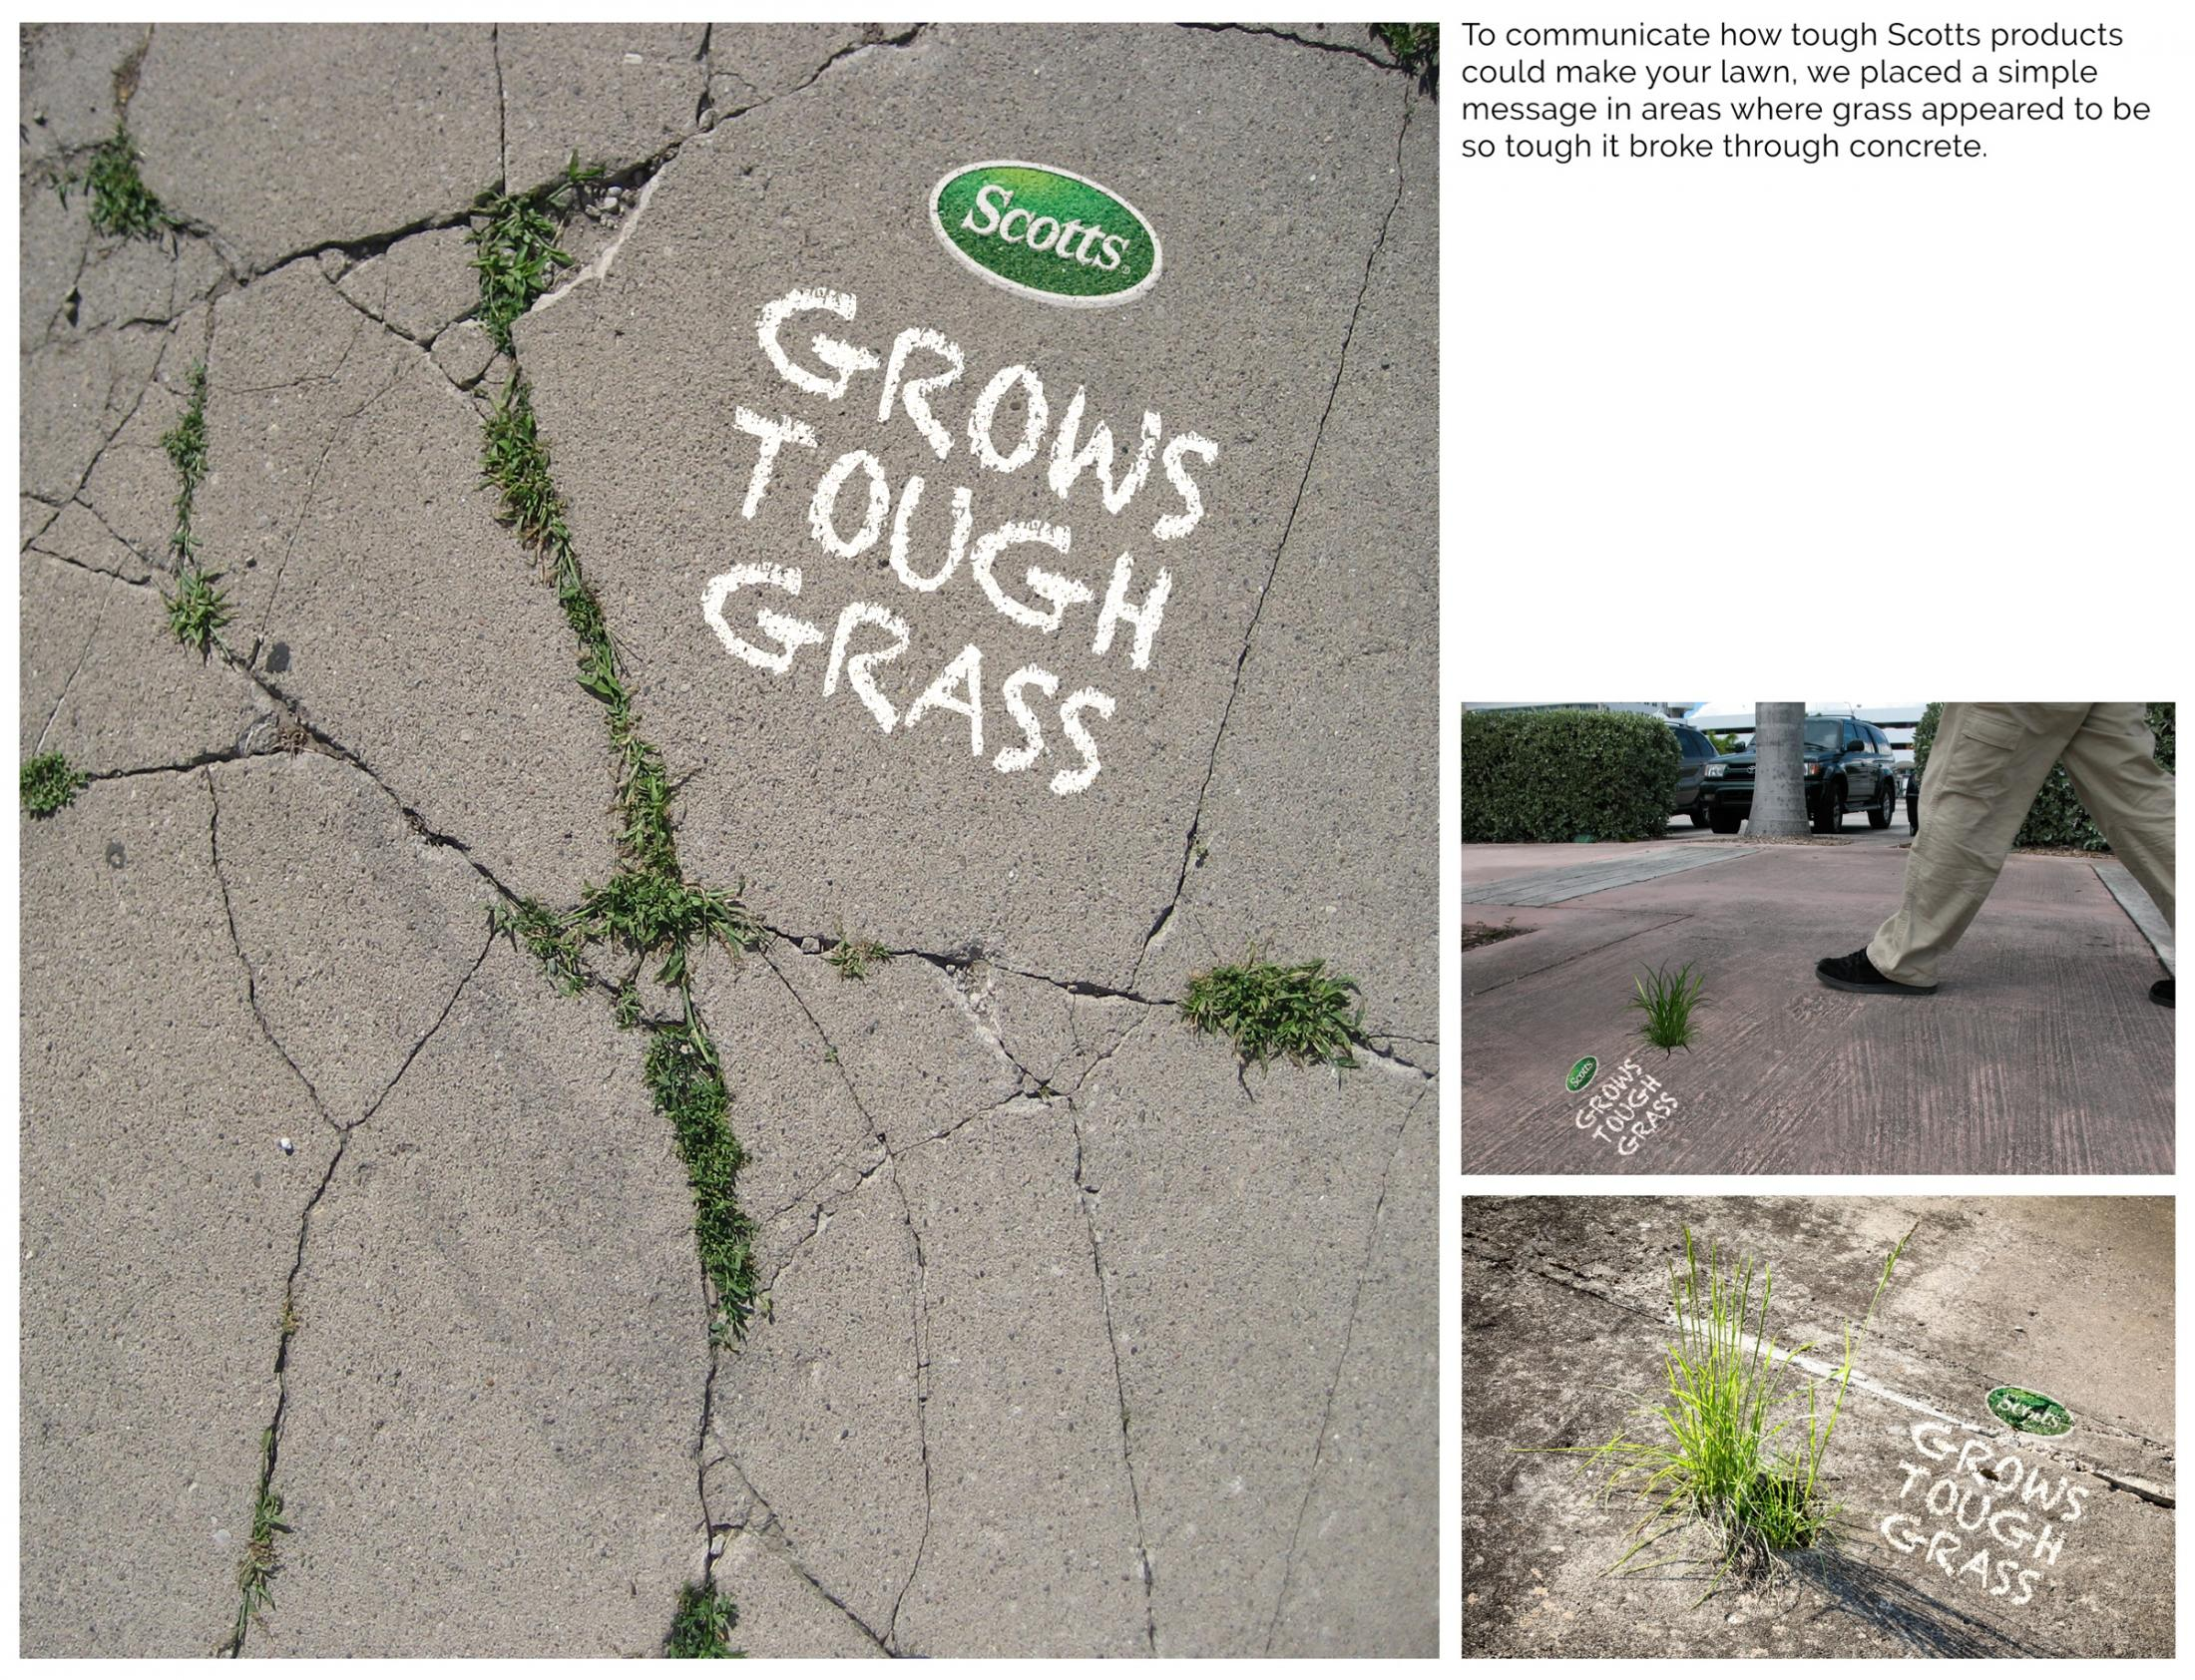 Scotts Ambient Ad - Tough Grass